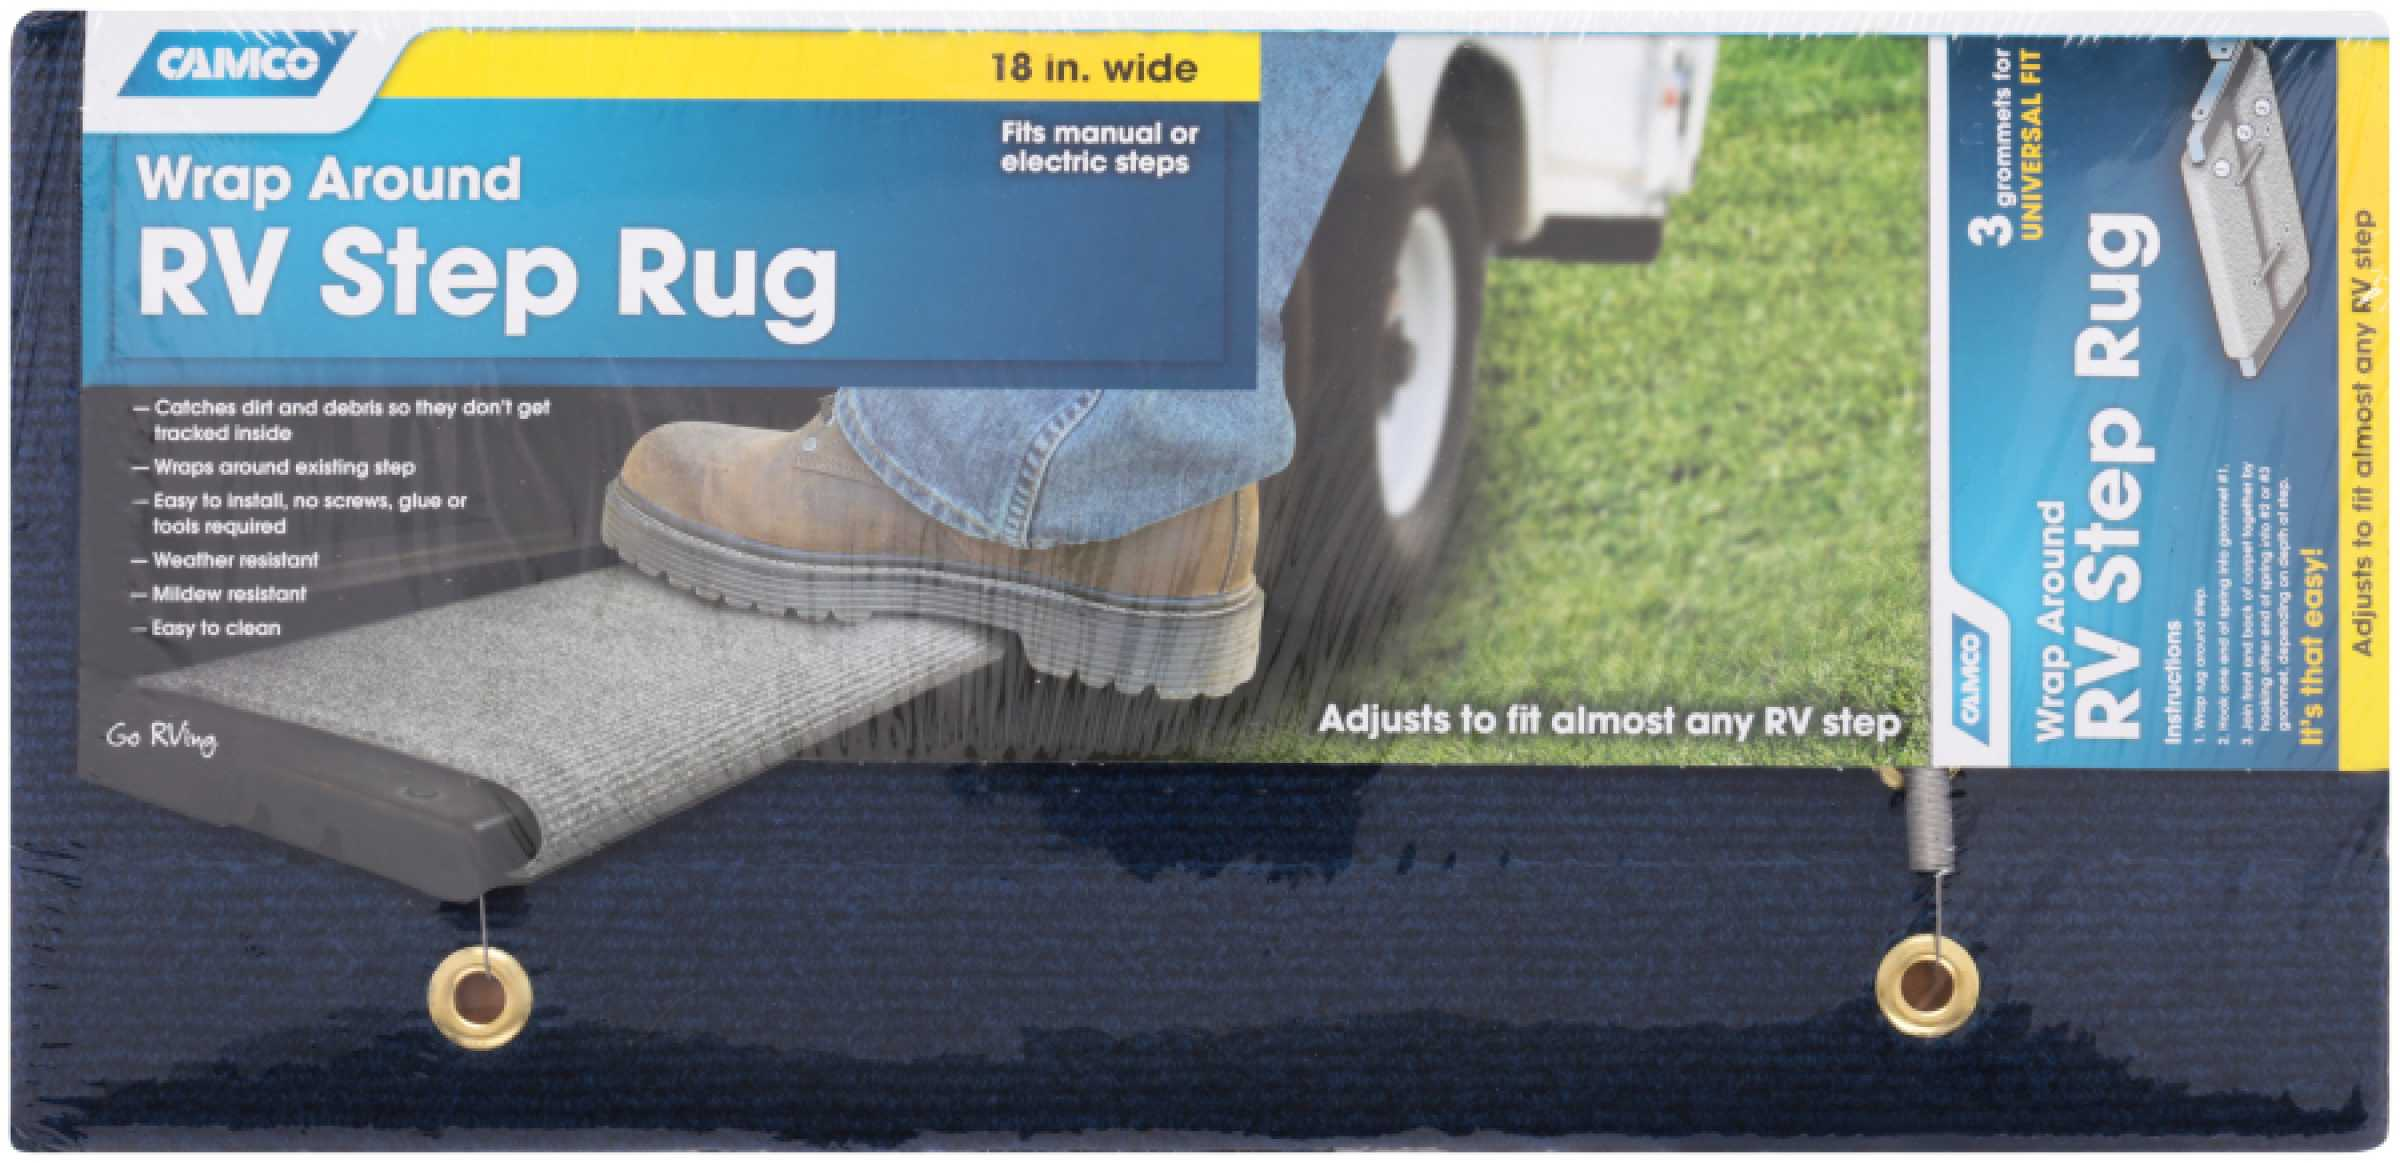 Camco Wrap Around RV Step Rug